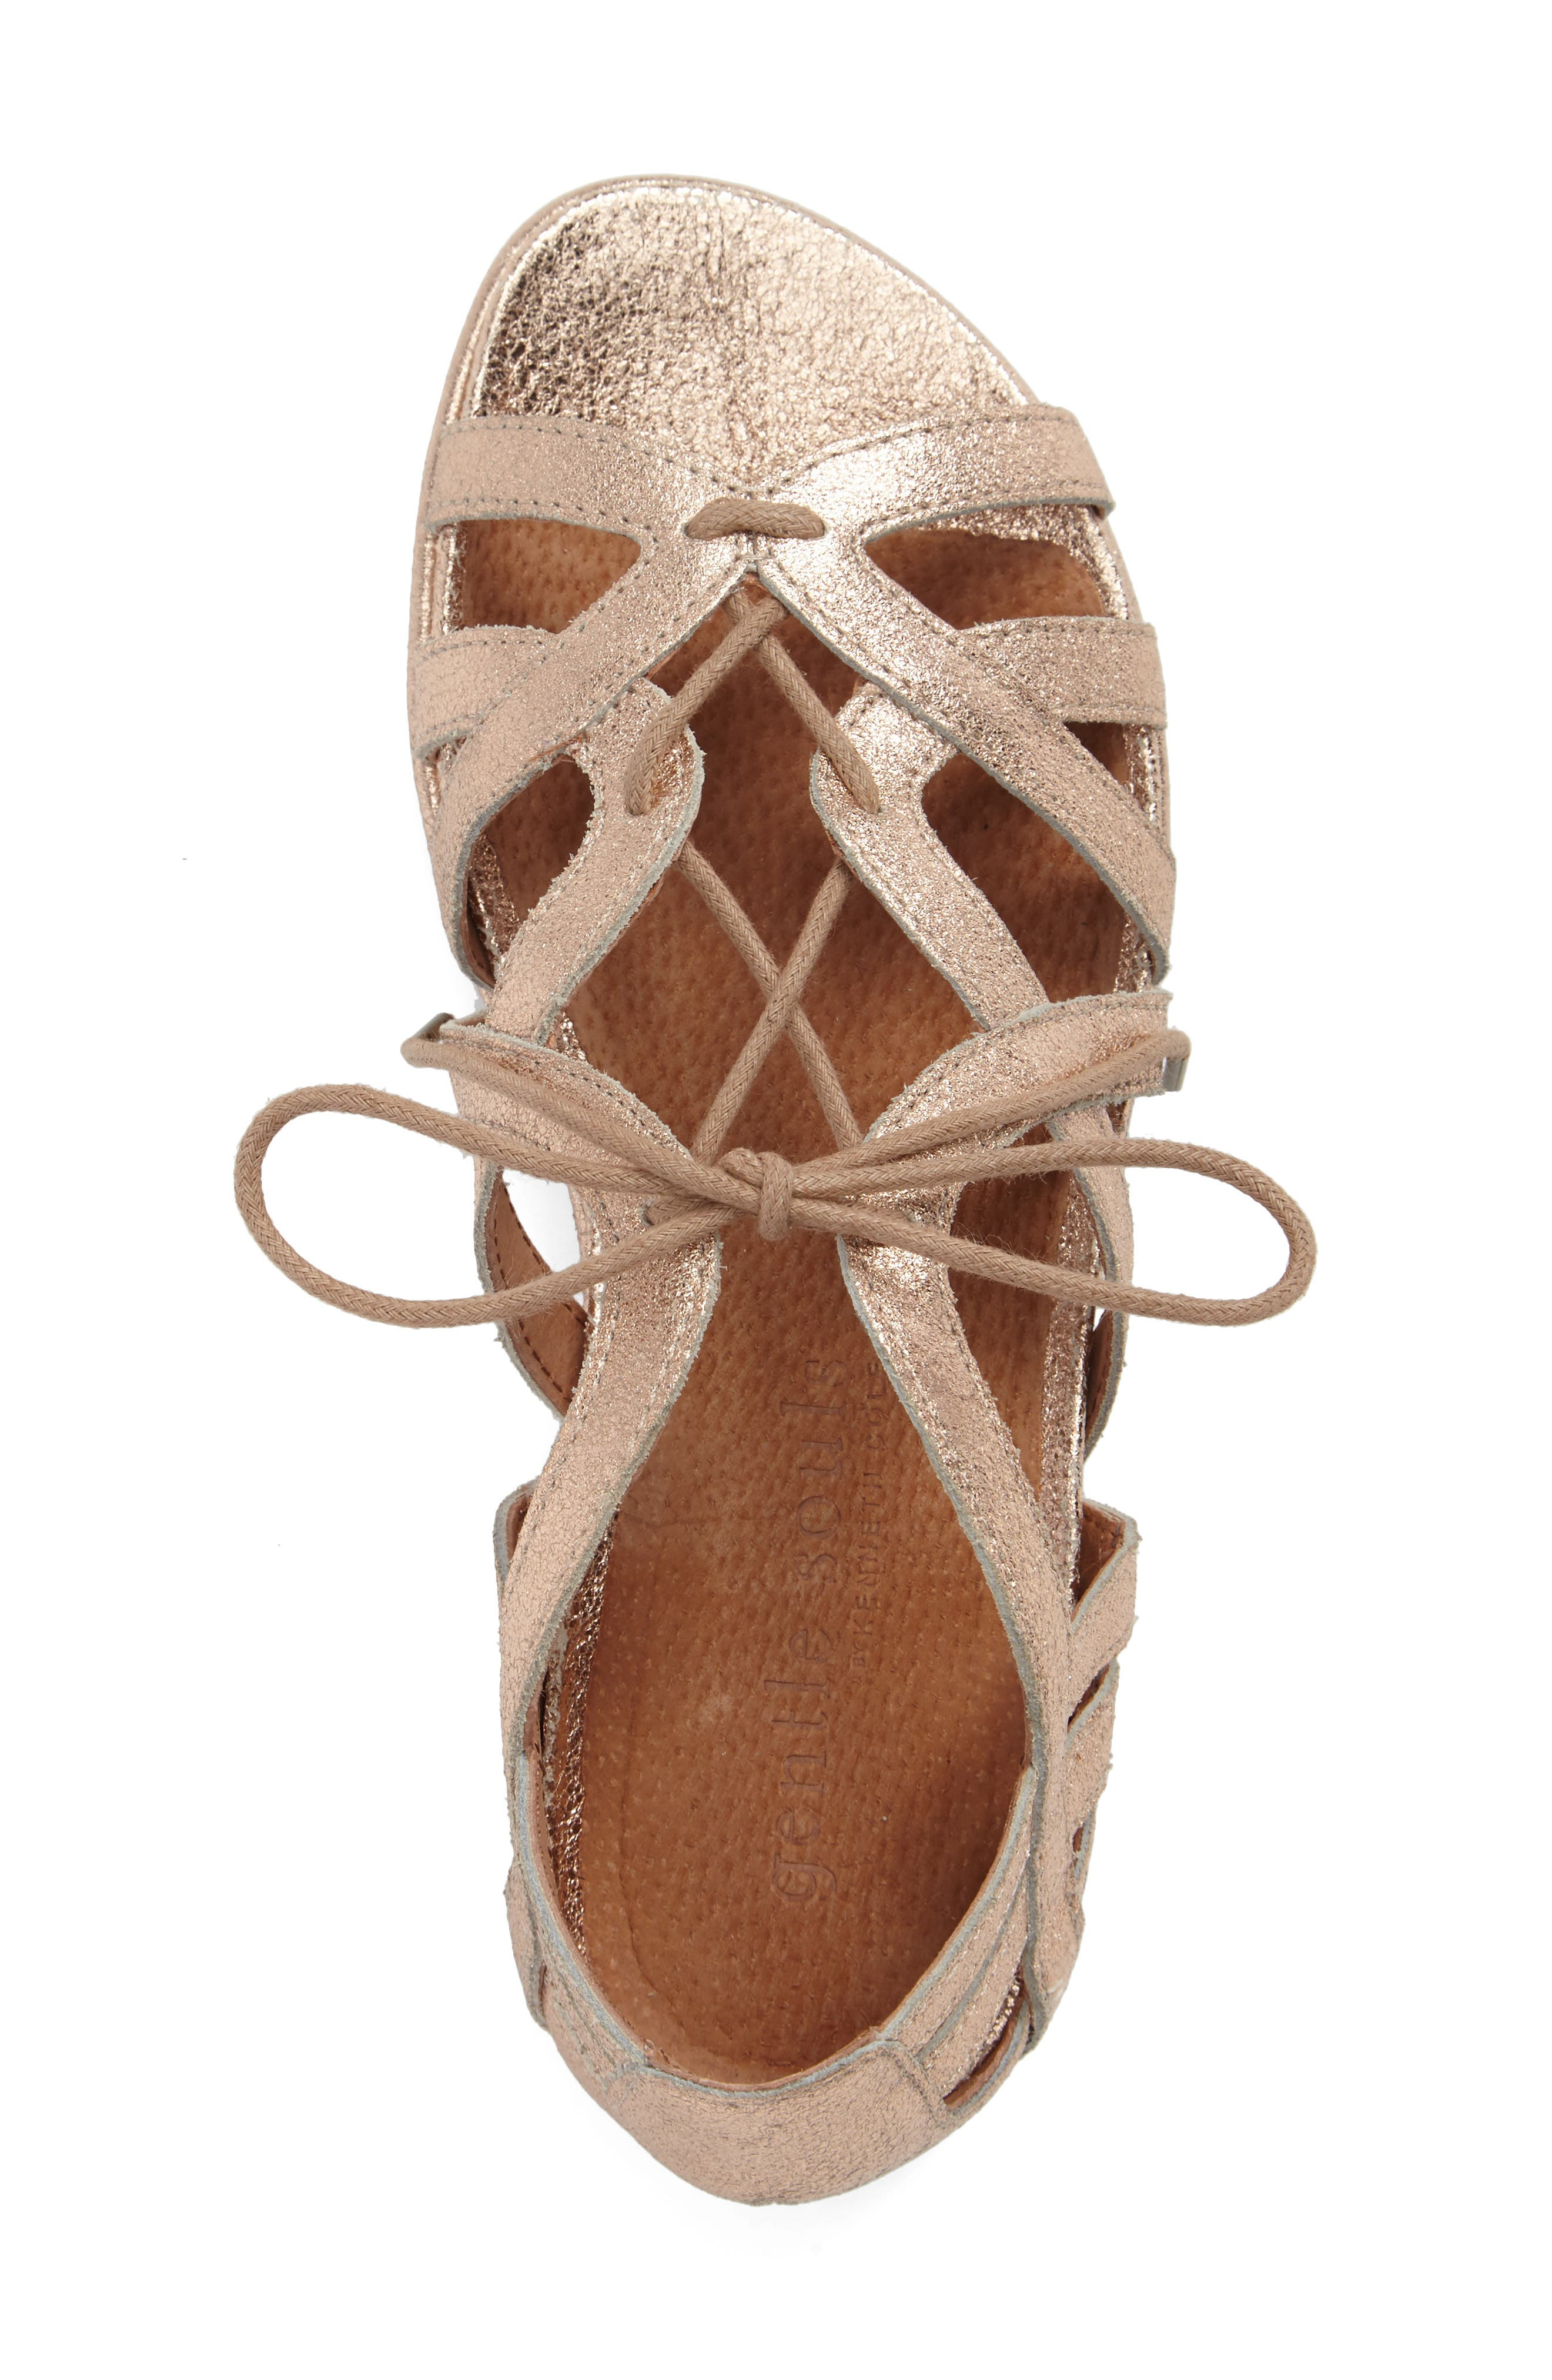 Orly Lace-Up Sandal,                             Alternate thumbnail 5, color,                             ROSE GOLD LEATHER